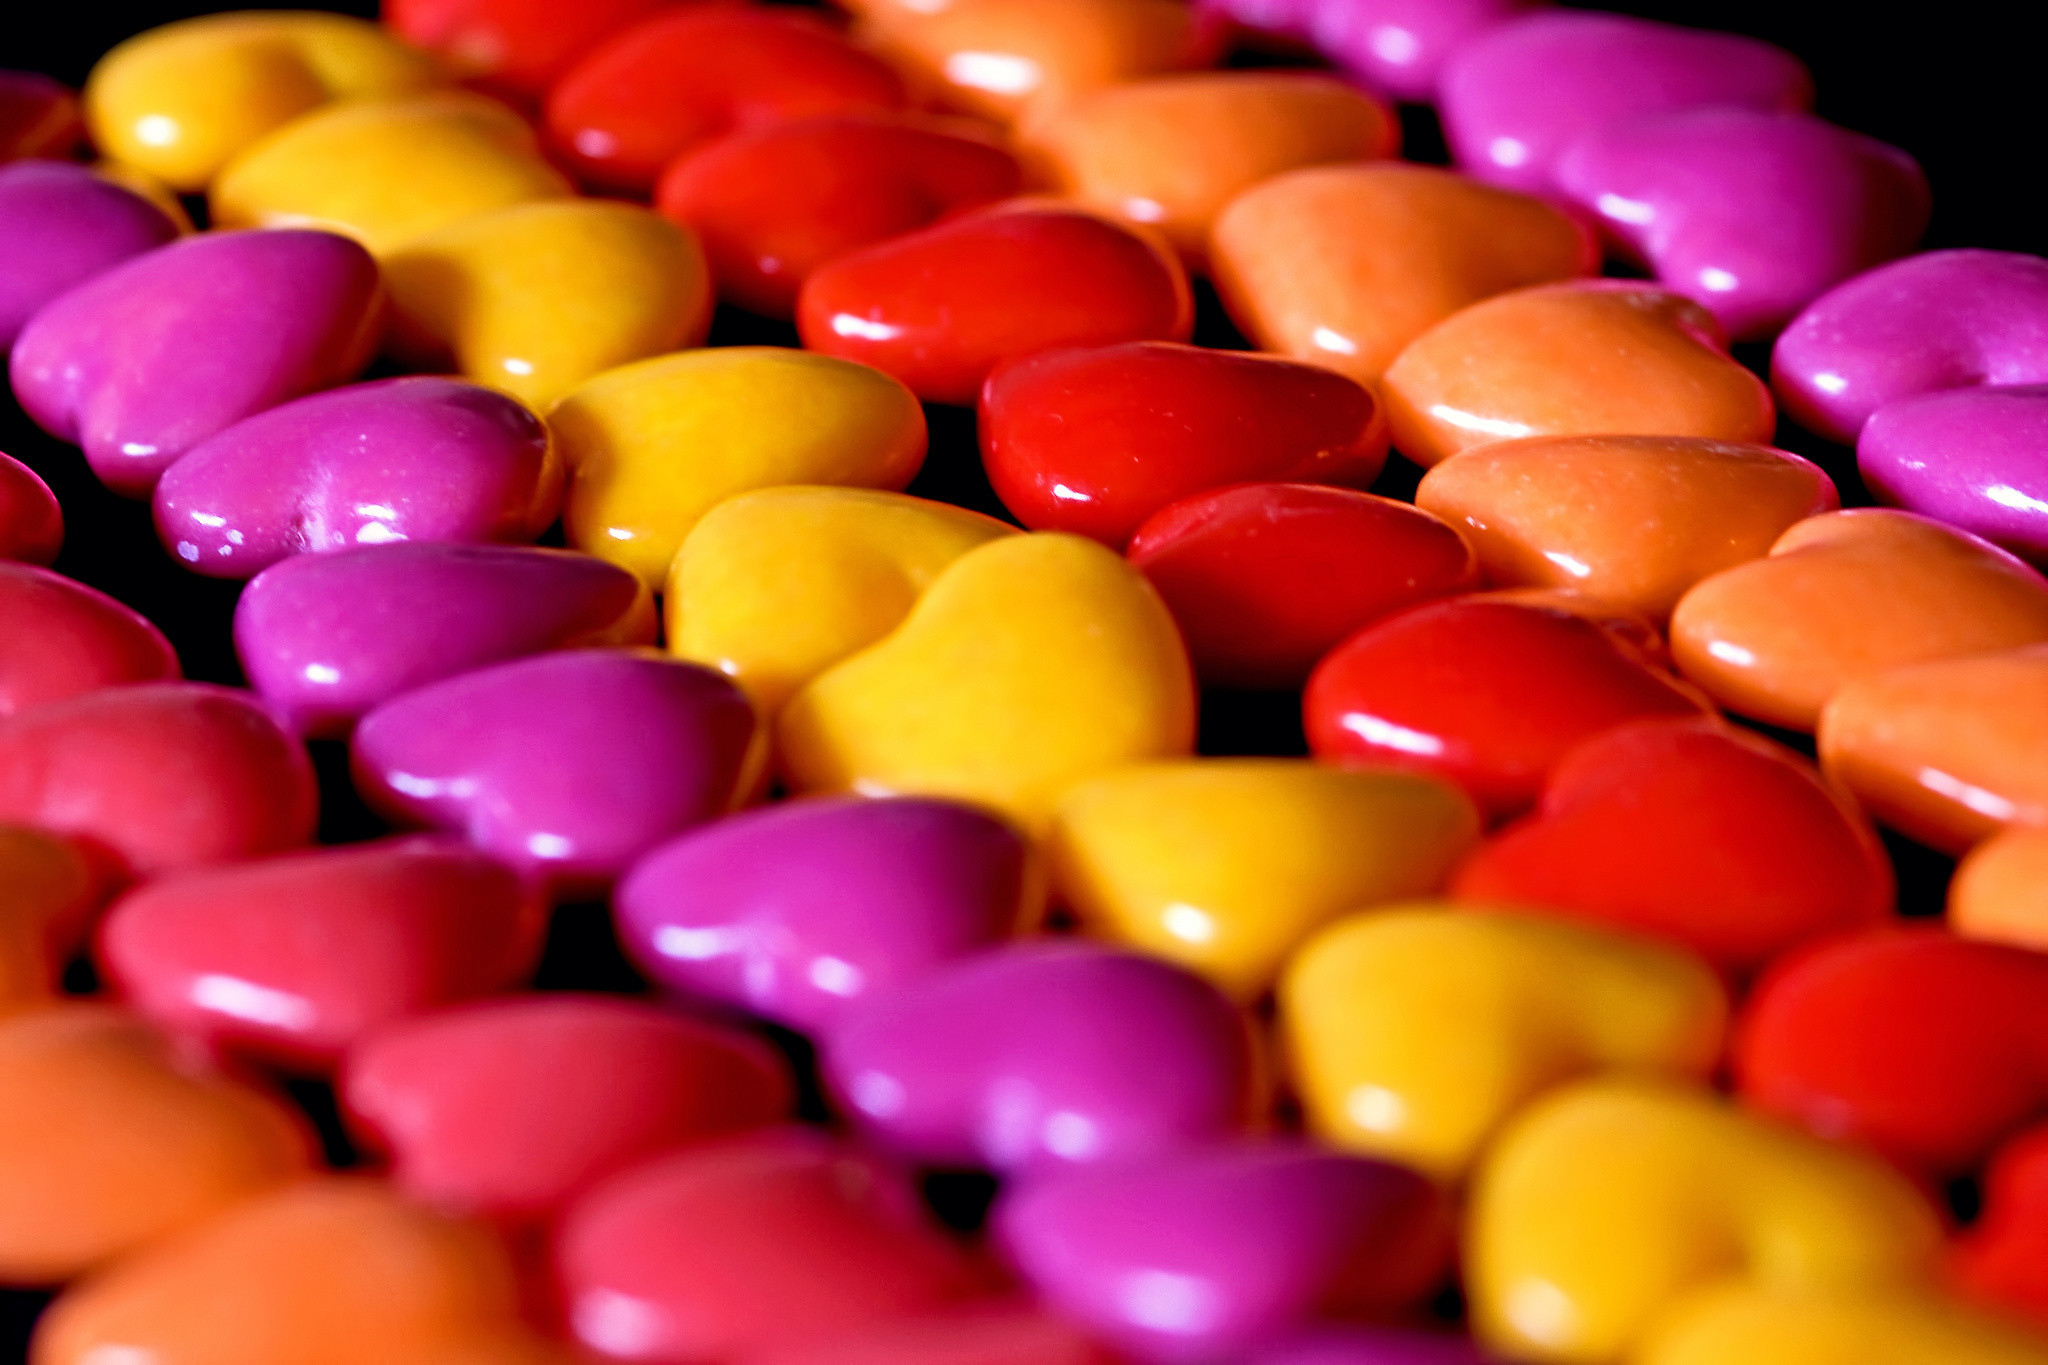 2048x1365 Candy jelly beans hearts close-up bokeh wallpaper |  | 162698 |  WallpaperUP